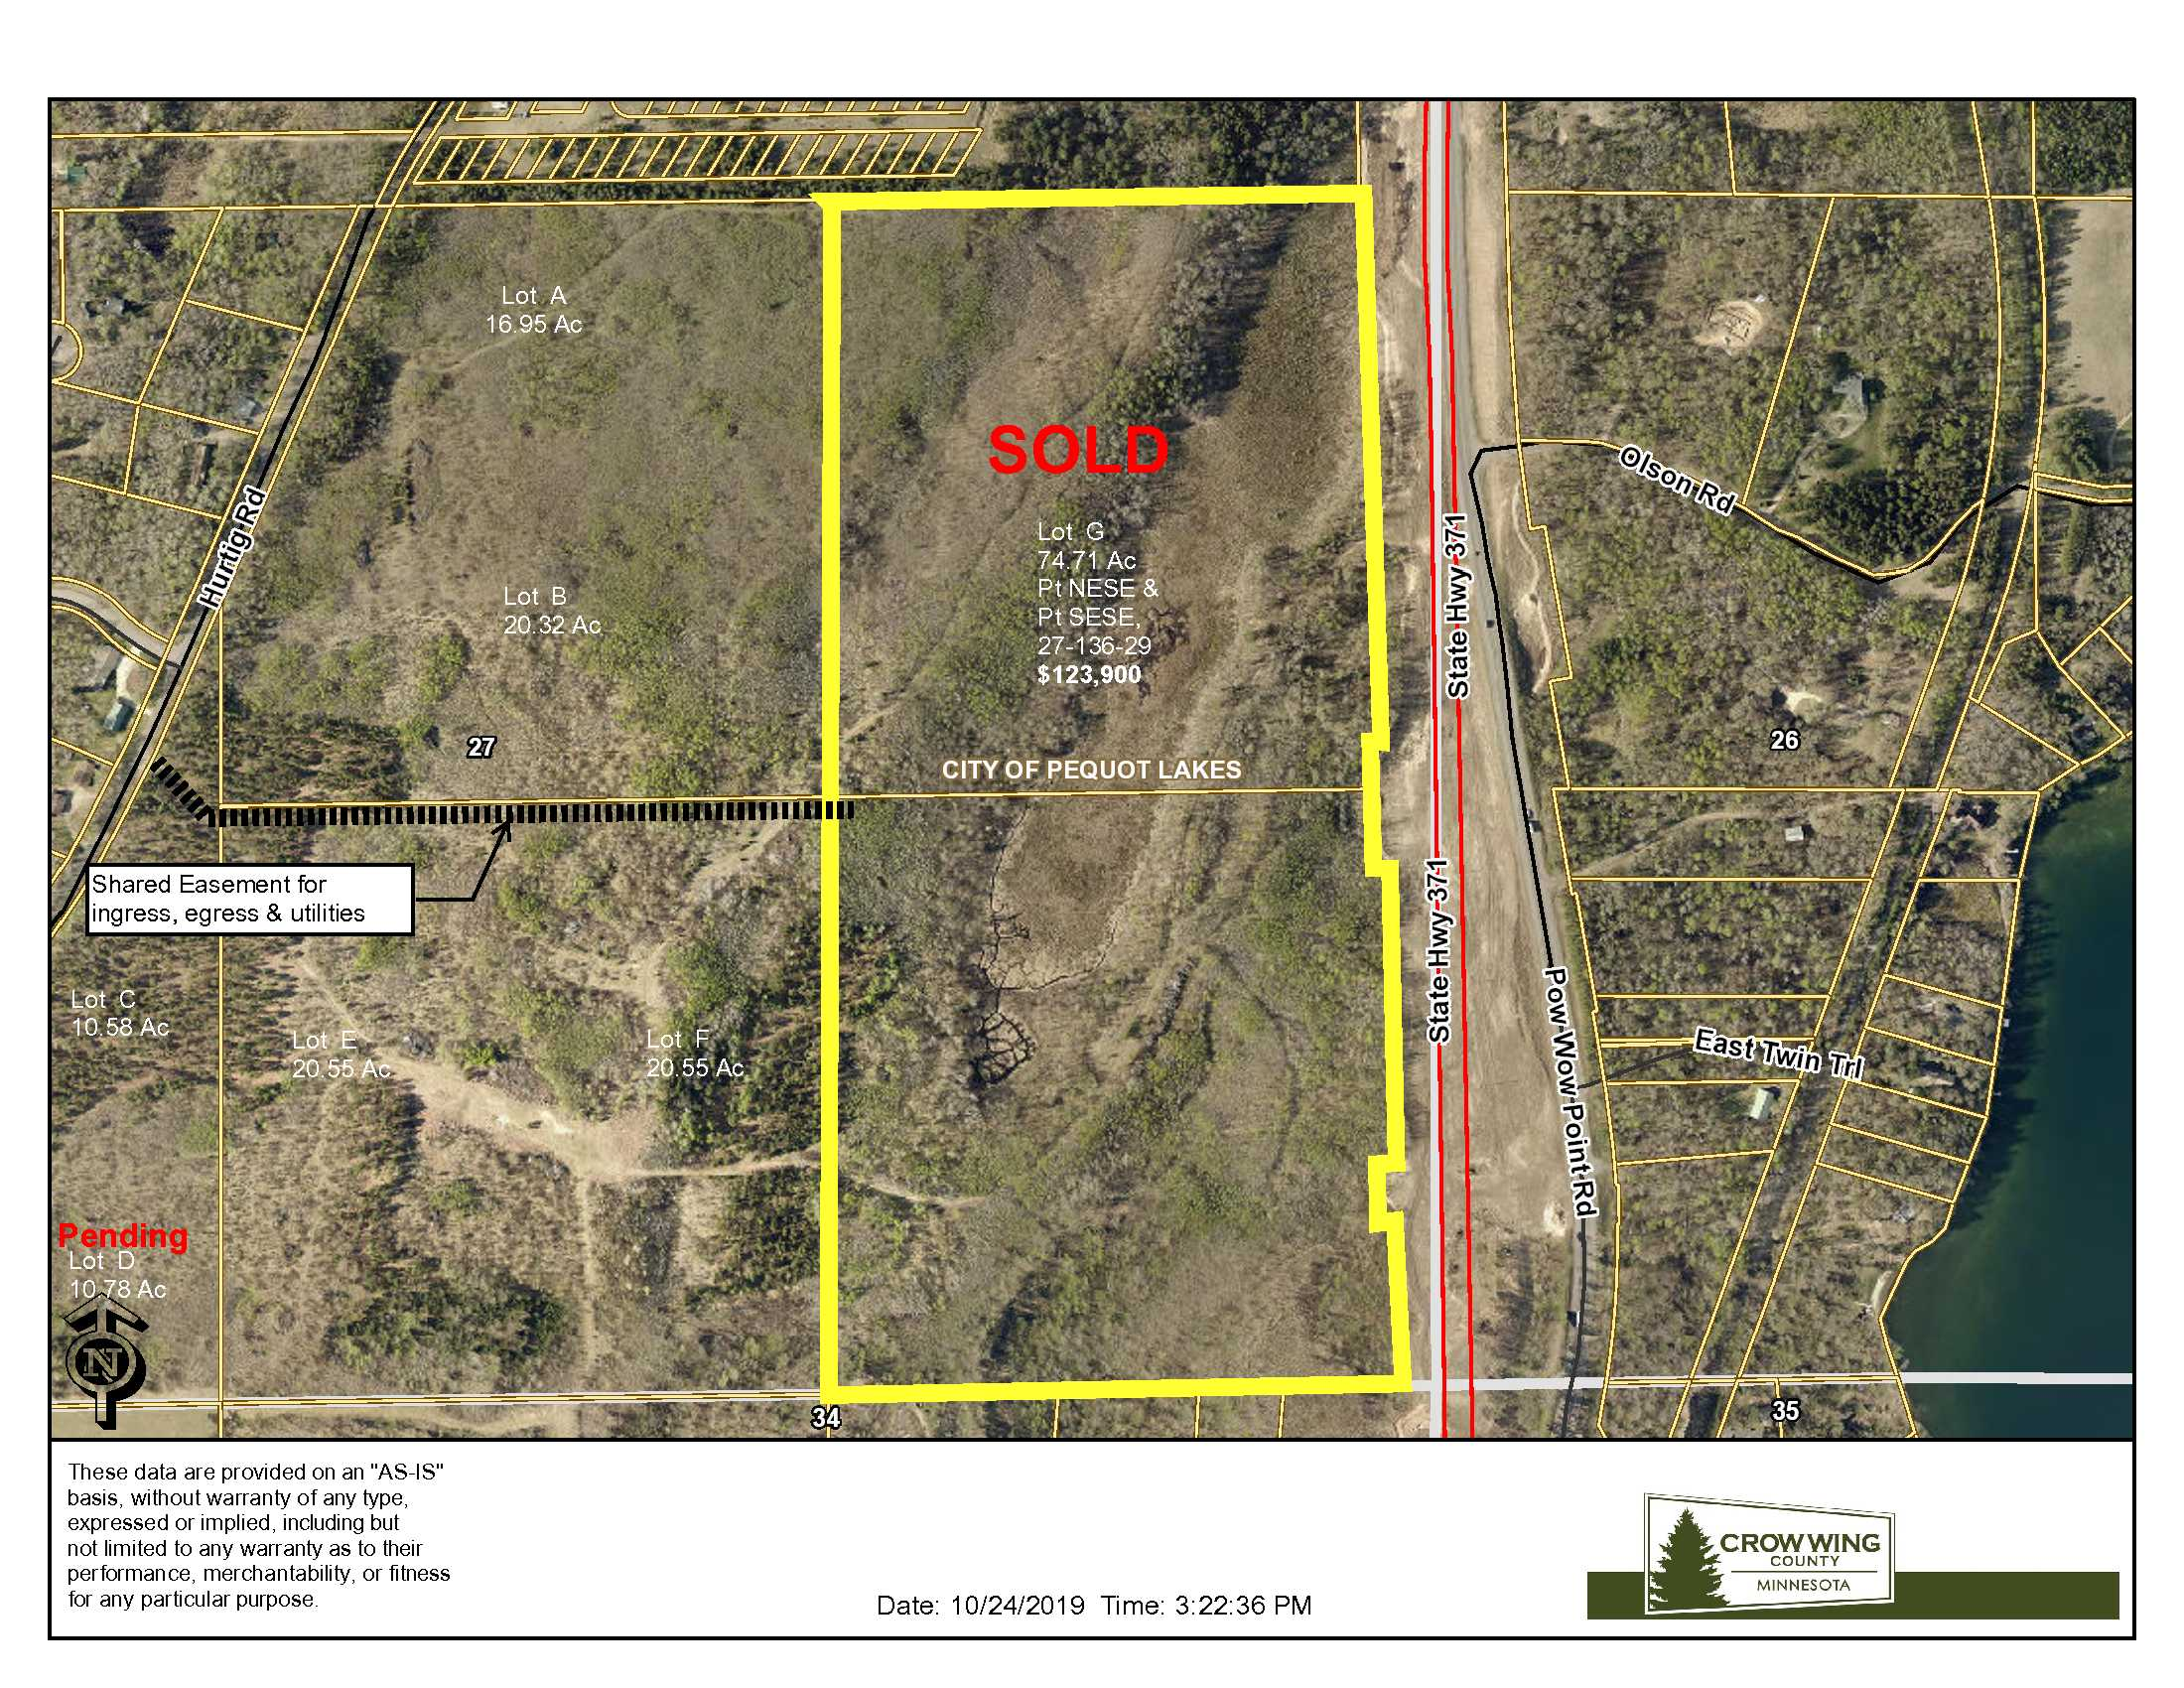 Lot G, TBD Hurtig Rd, Pequot Lakes, Crow Wing Co